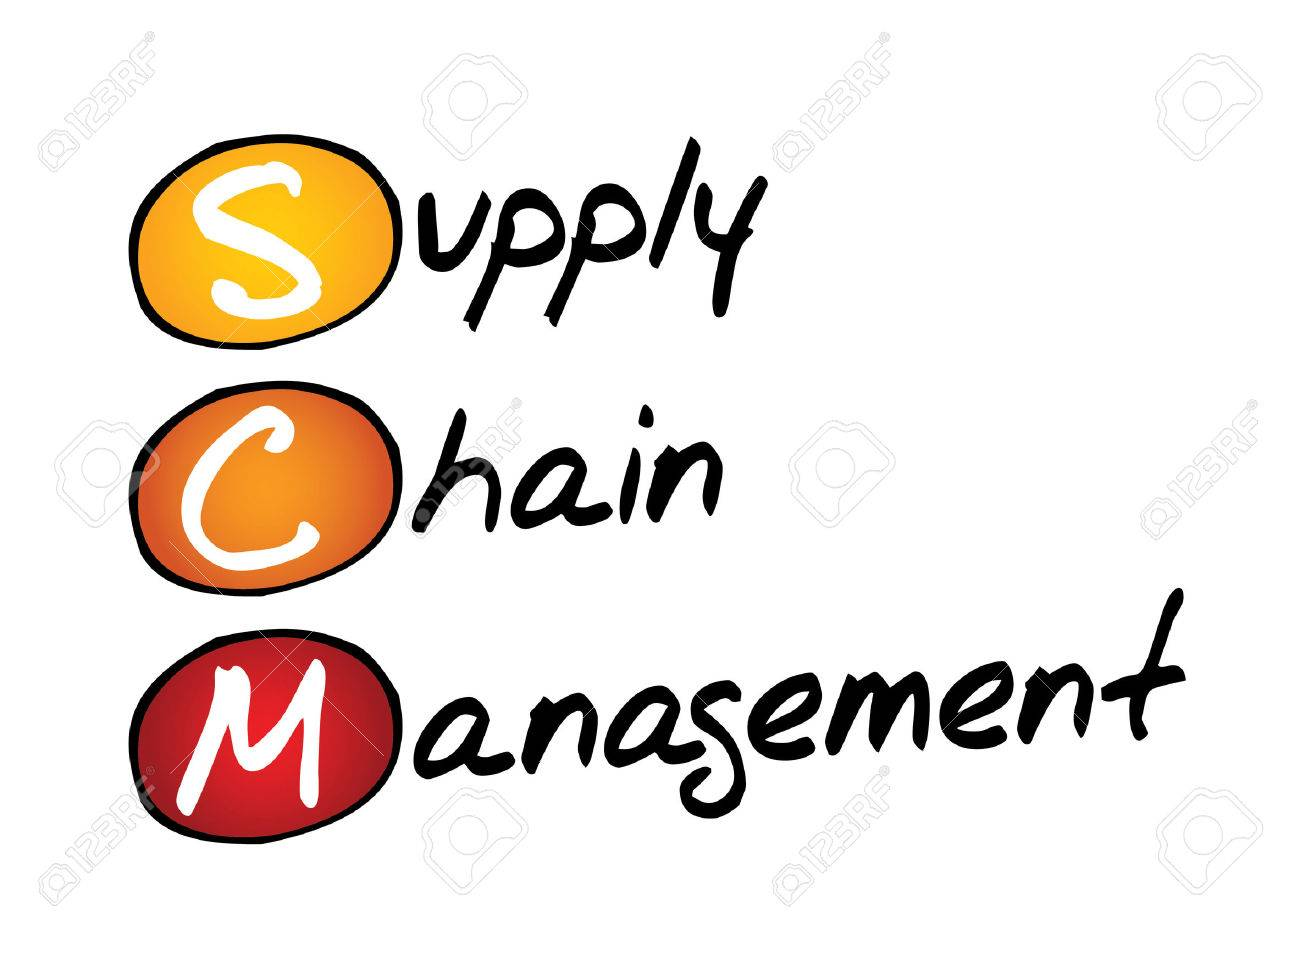 Supply Chain Management (SCM), Business Concept Acronym Royalty ...